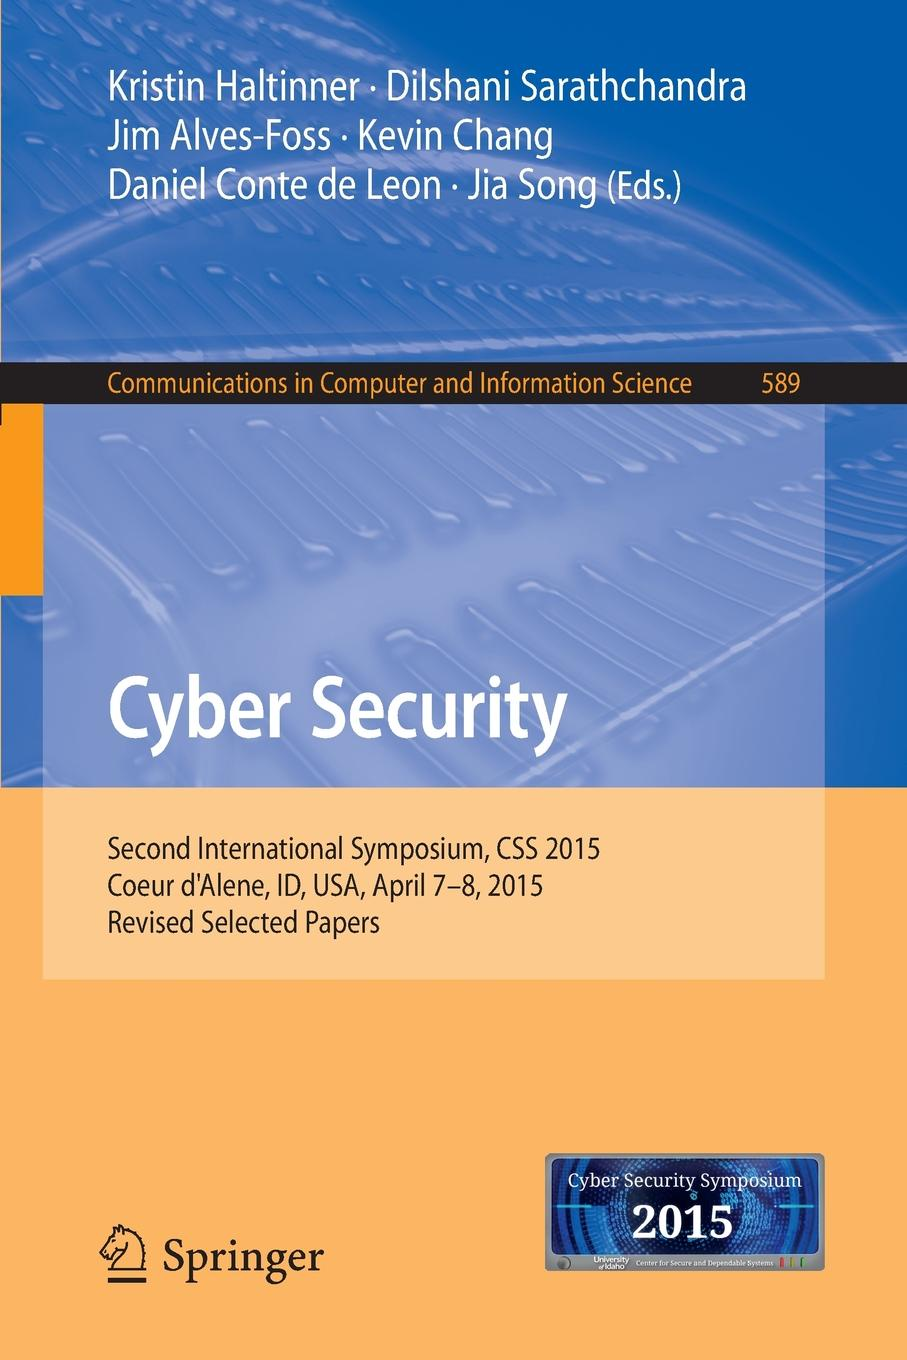 Cyber Security. Second International Symposium, CSS 2015, Coeur d'Alene, ID, USA, April 7-8, 2015, Revised Selected Papers cyber security and privacy third cyber security and privacy eu forum csp forum 2014 athens greece may 21 22 2014 revised selected papers